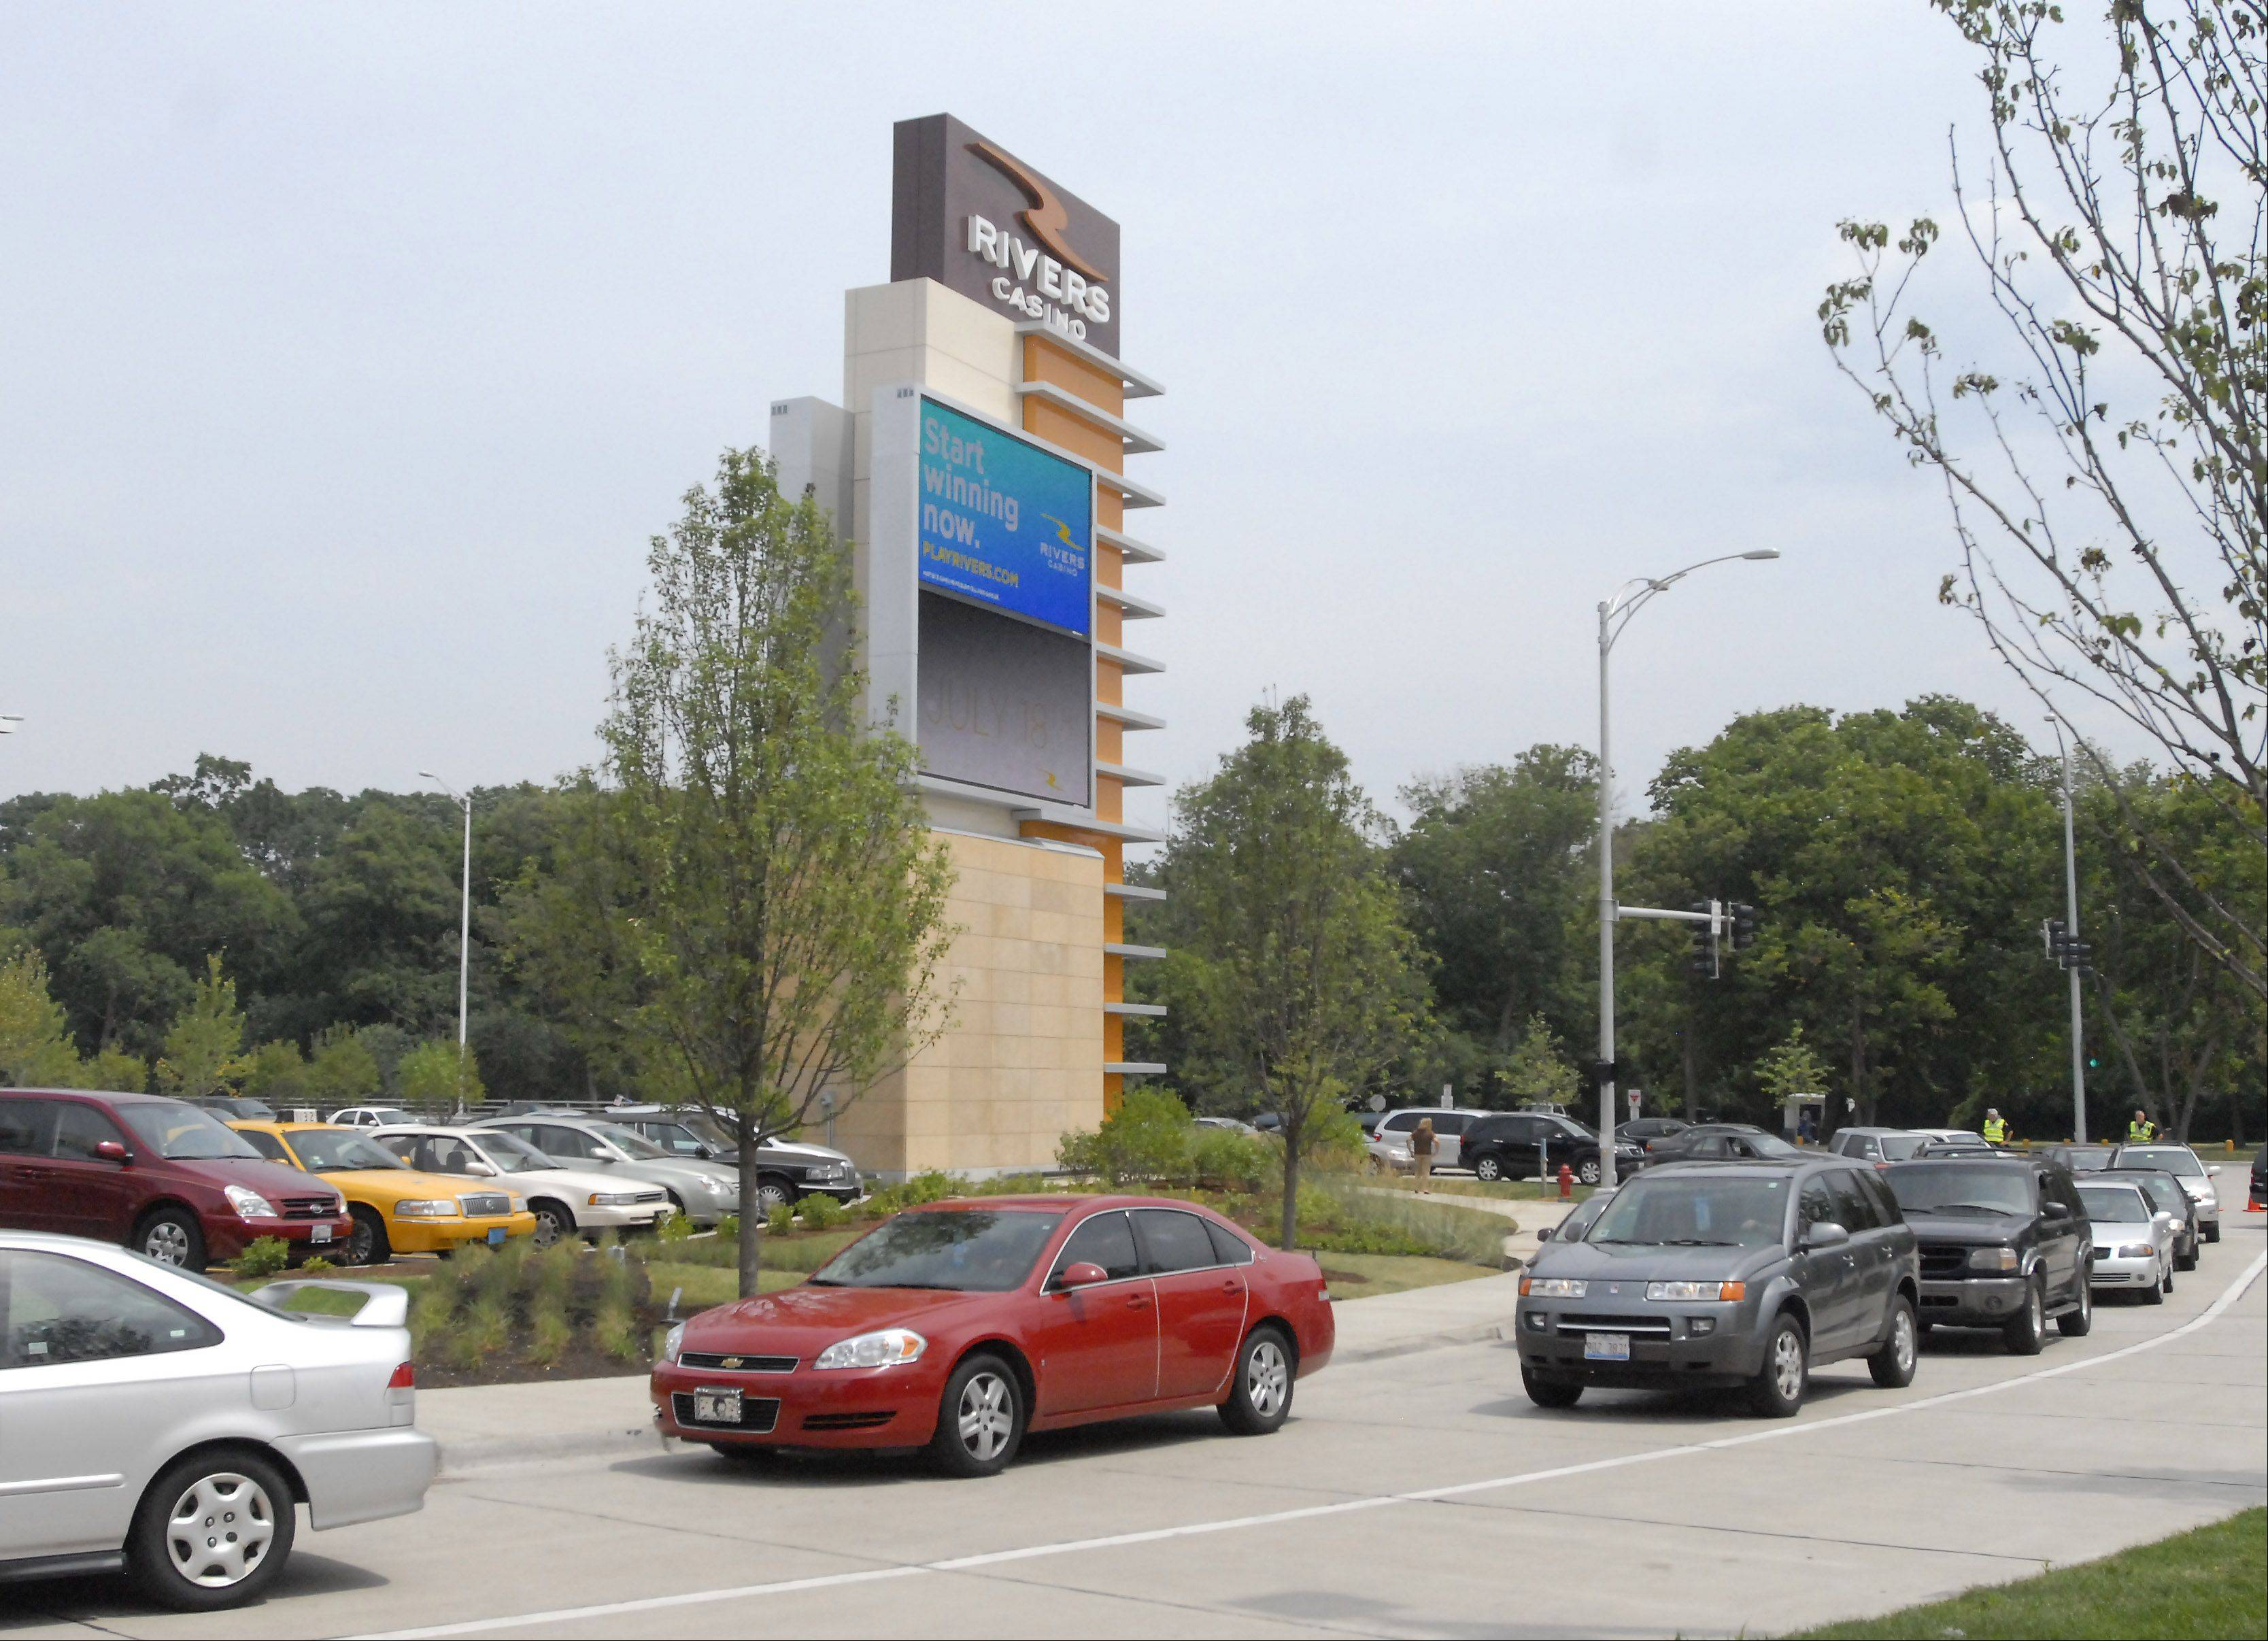 Bill Zars/bzars@dailyherald.comThere's a move to organize the parking and valet attendants at Rivers Casino in Des Plaines with support from the city's mayor.